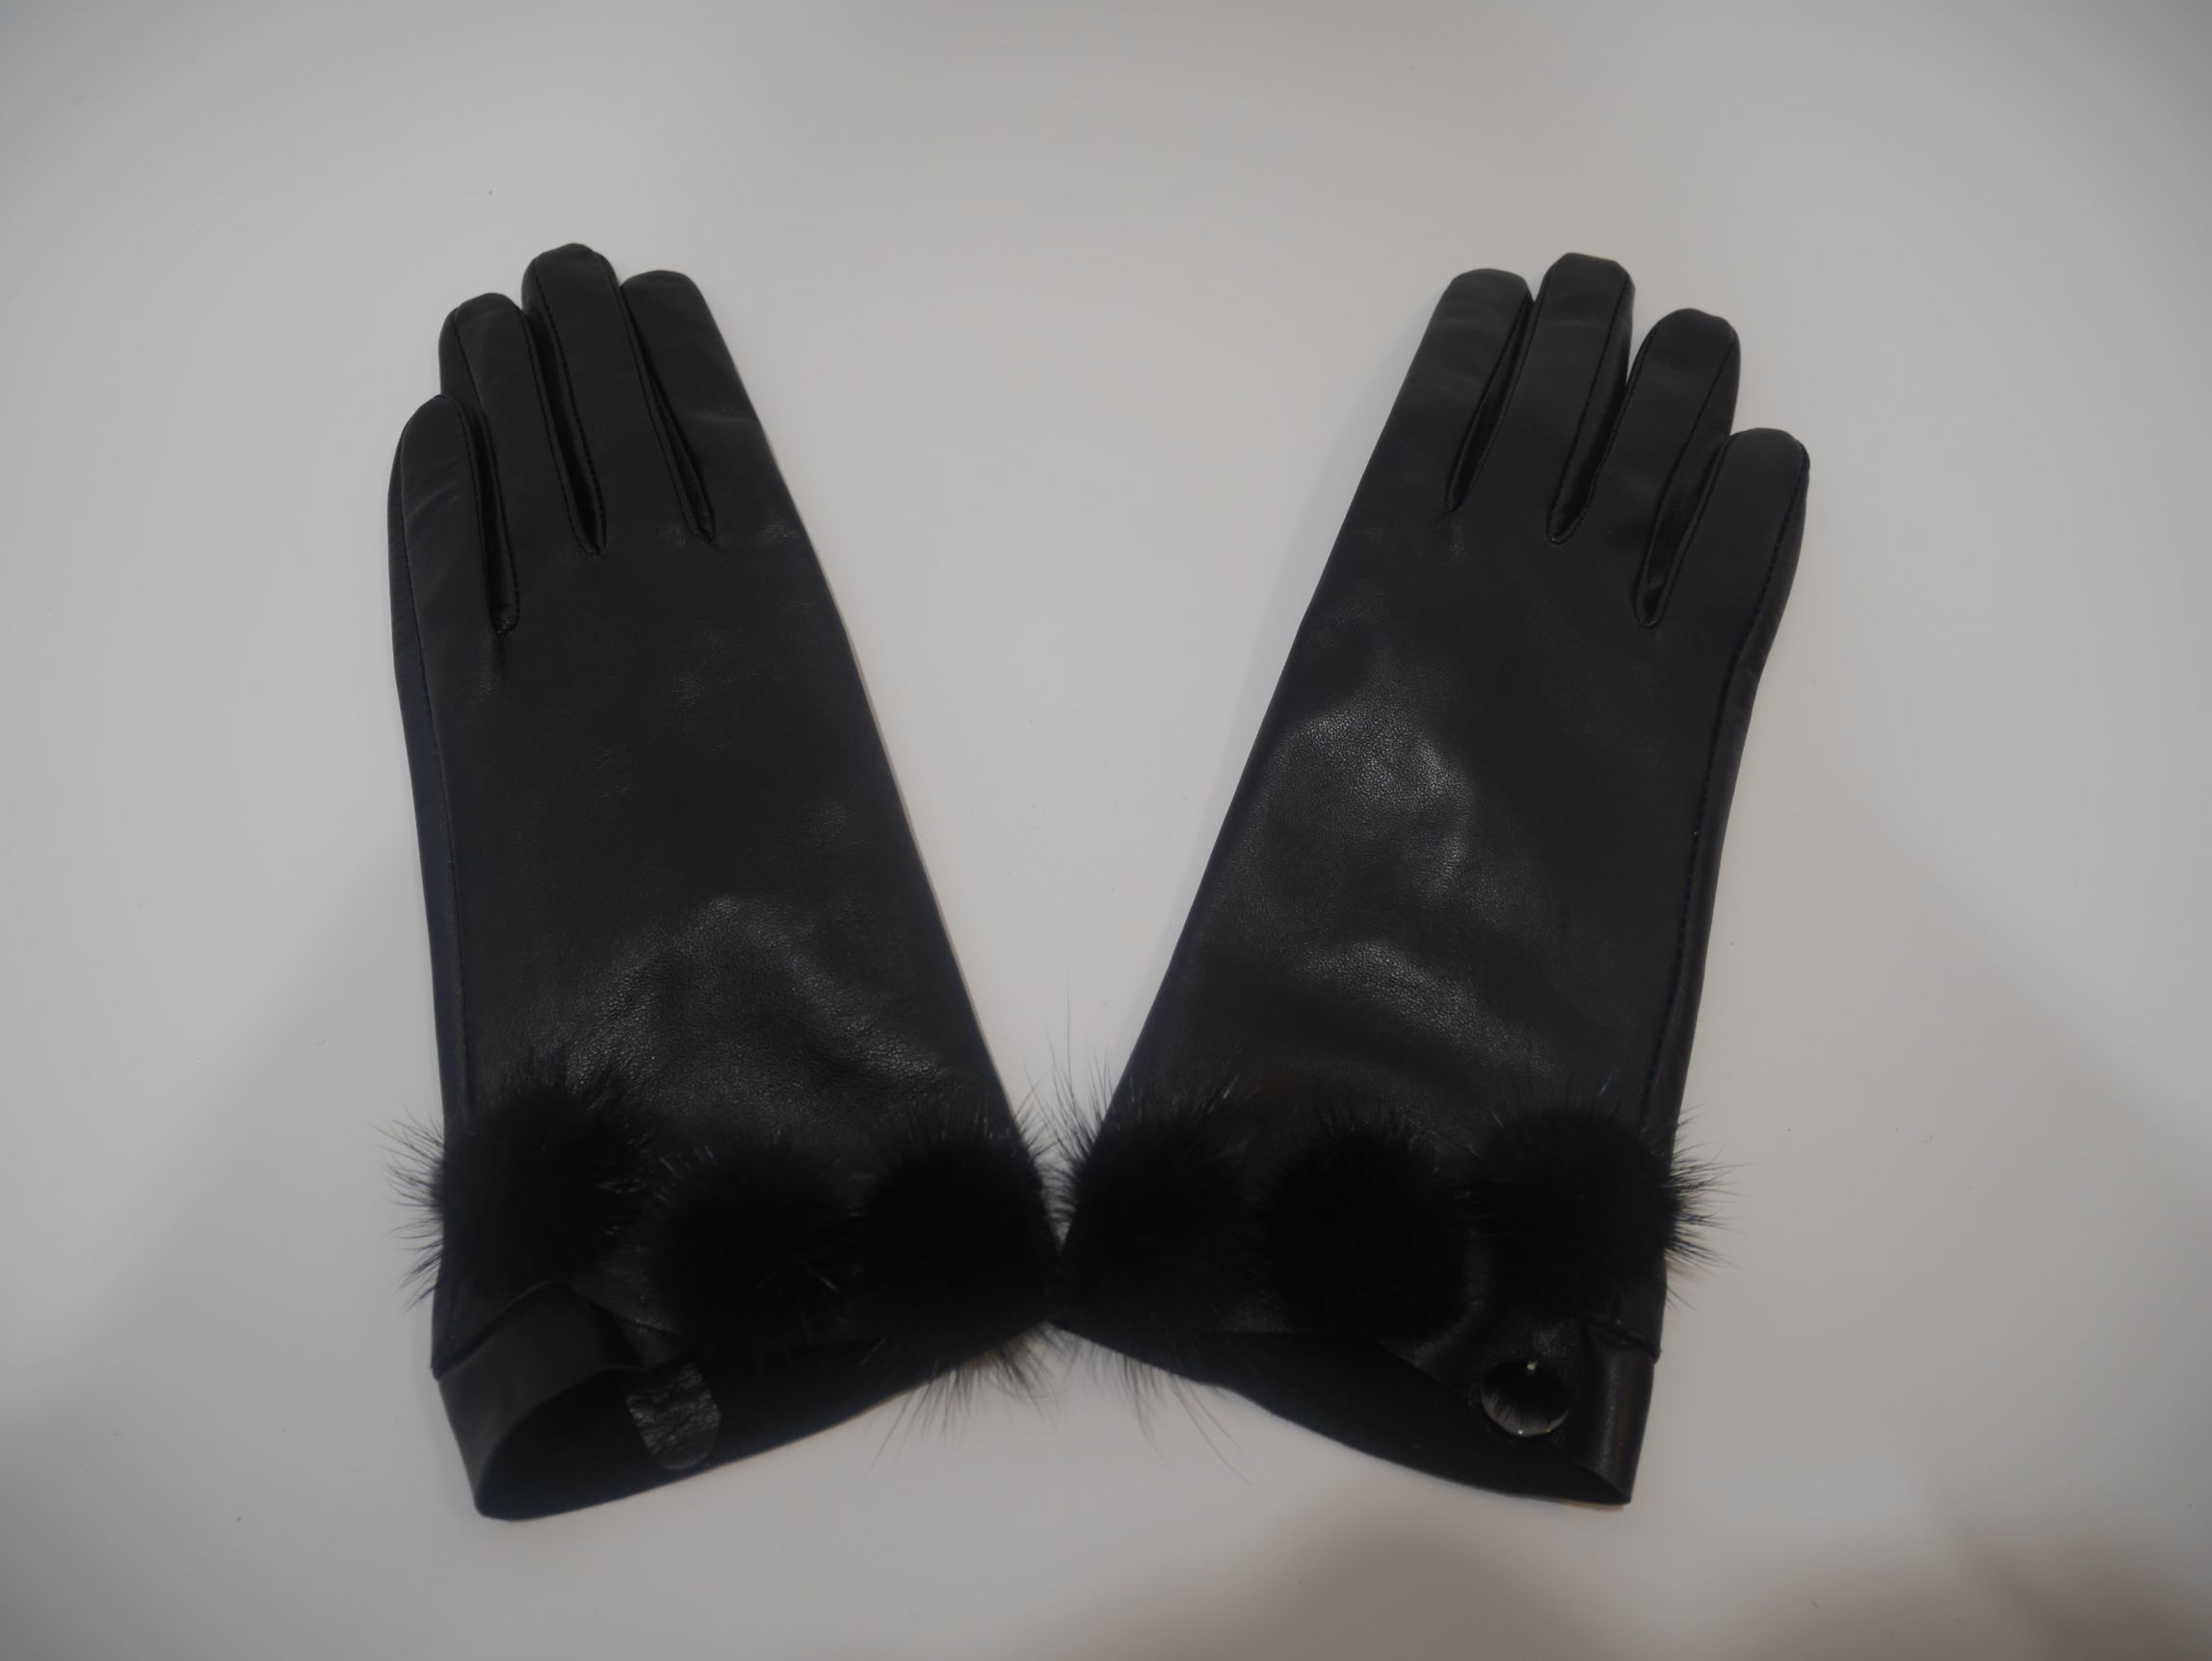 269088 P0015 22222 LEATHER GLOVES 2